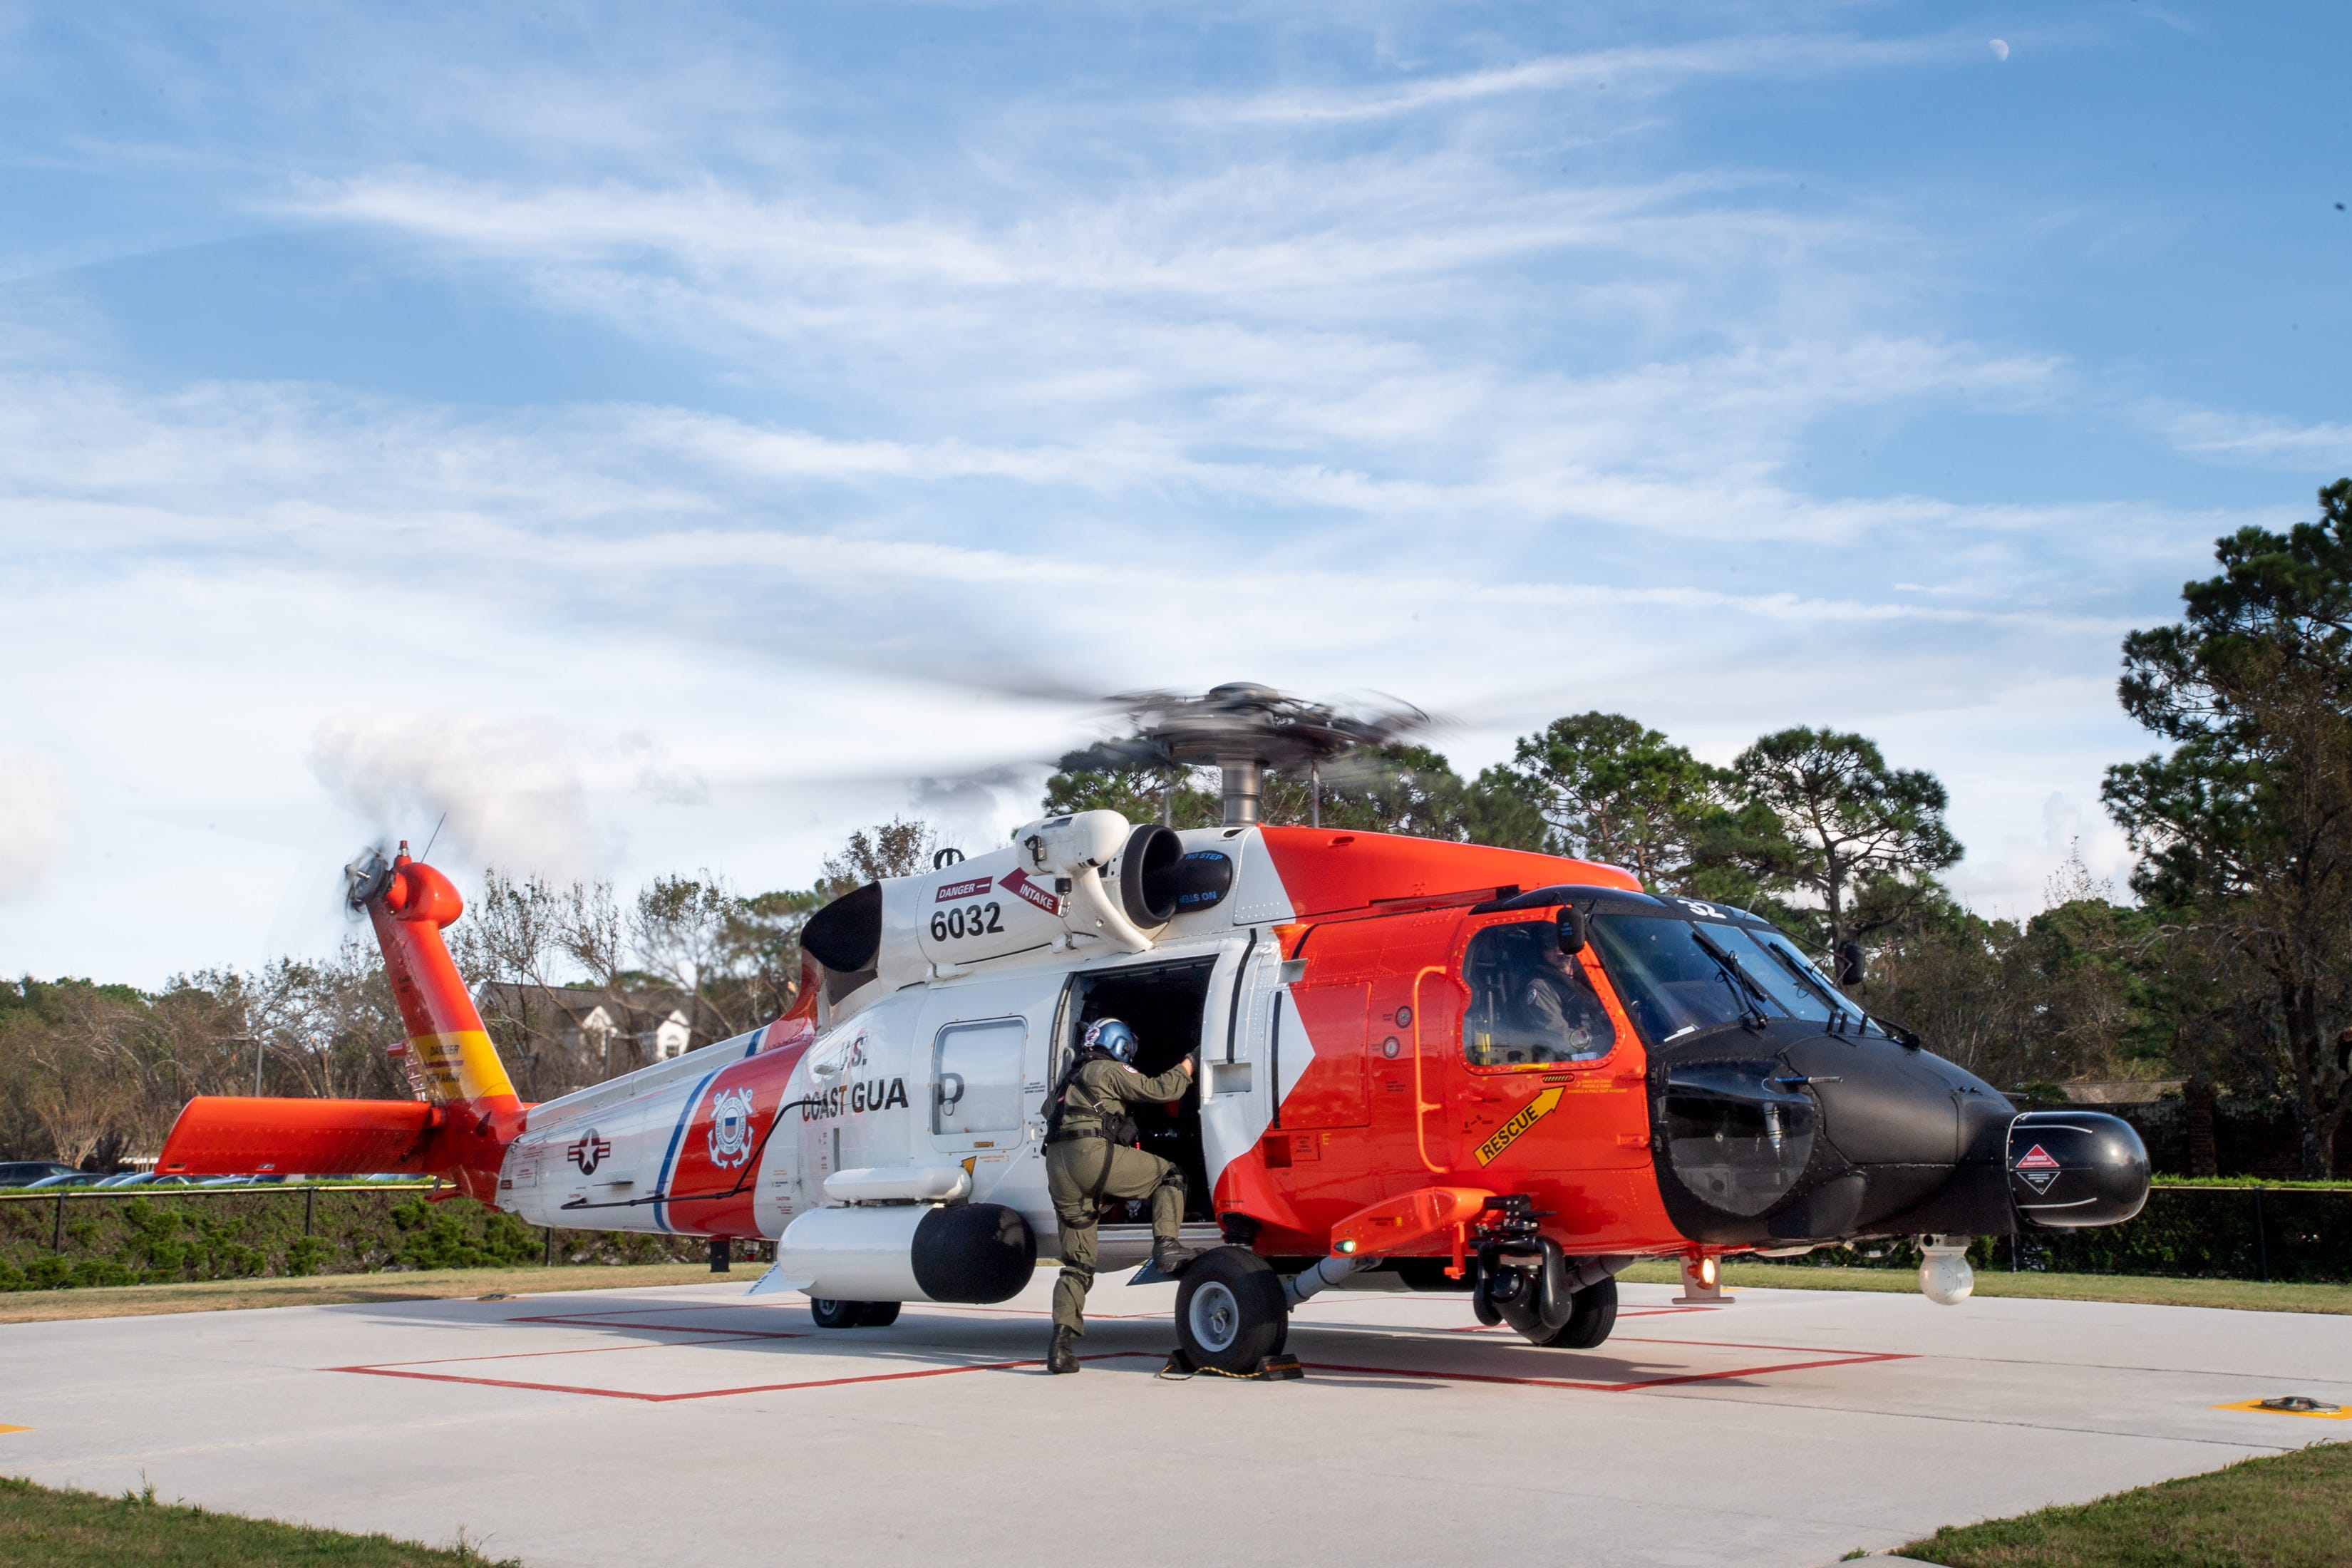 Coast Guard Flight Mechanic  Nick Gilkinson climbs into a MH-60T Jayhawk helicopter after dropping off a patient at the New Hanover Regional Medical Center in Wilmington, N.C., on Sept. 17, 2018.